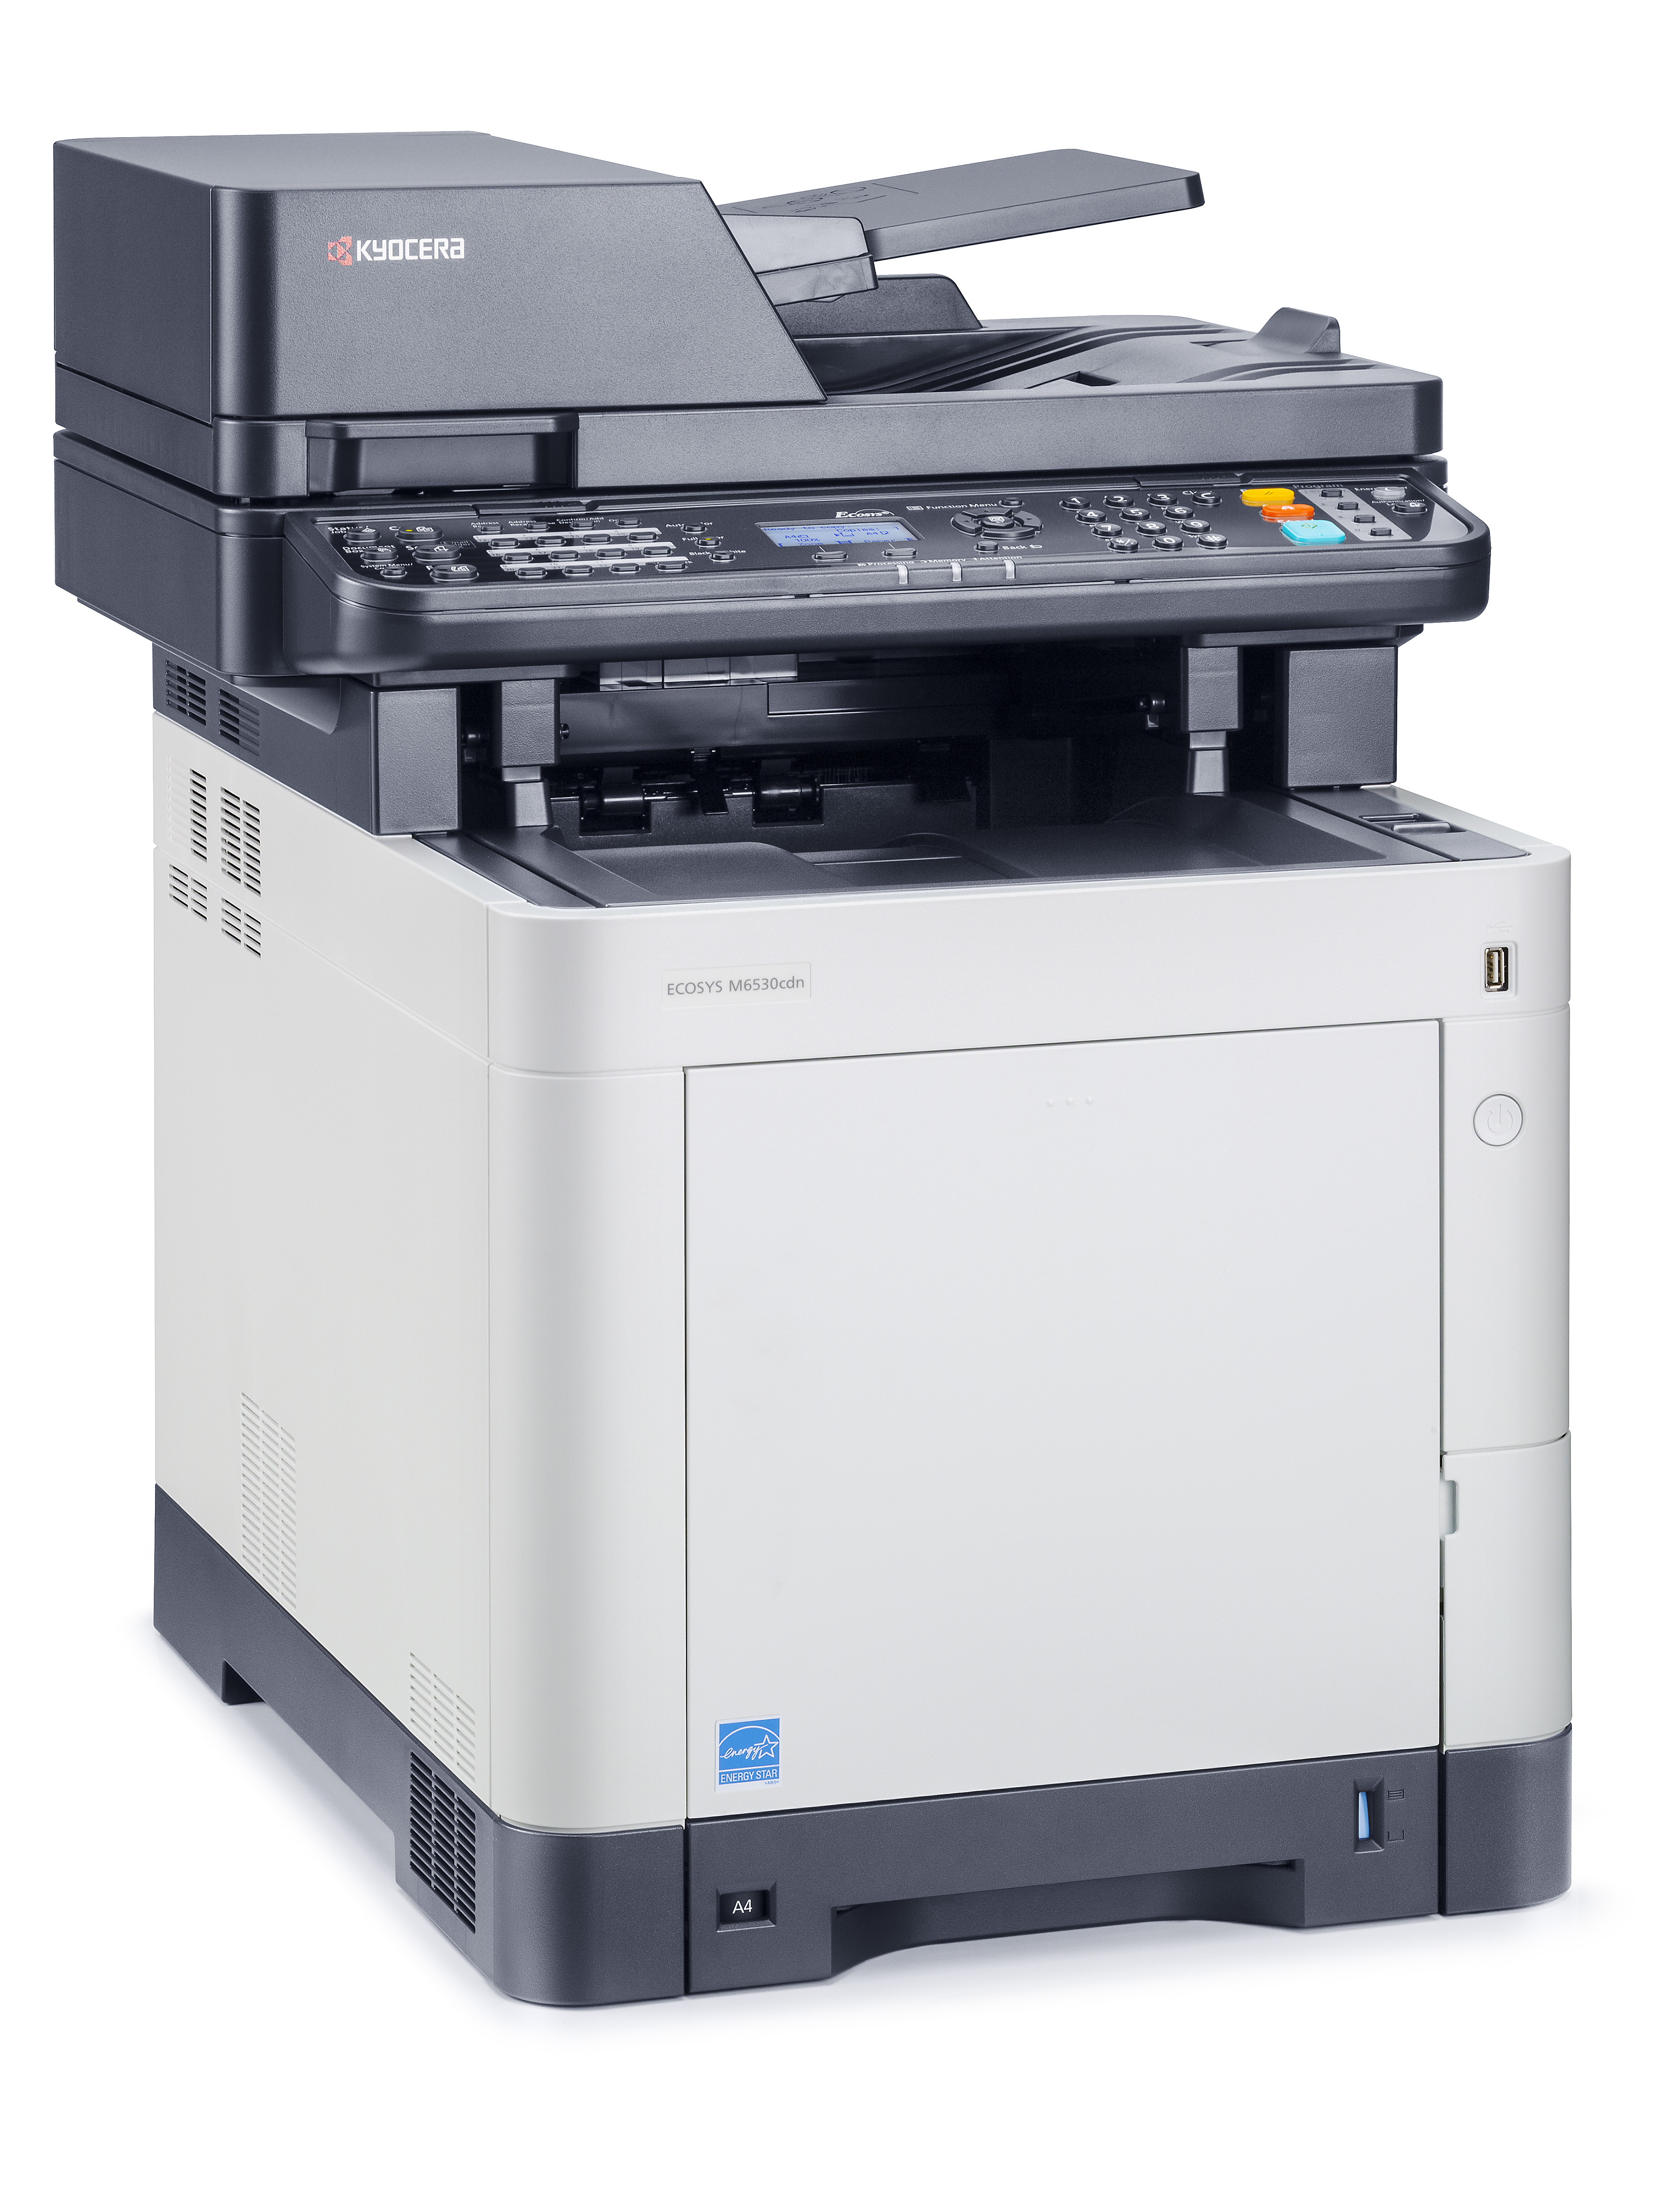 Kyocera Printers and Copiers | Copier World NZ